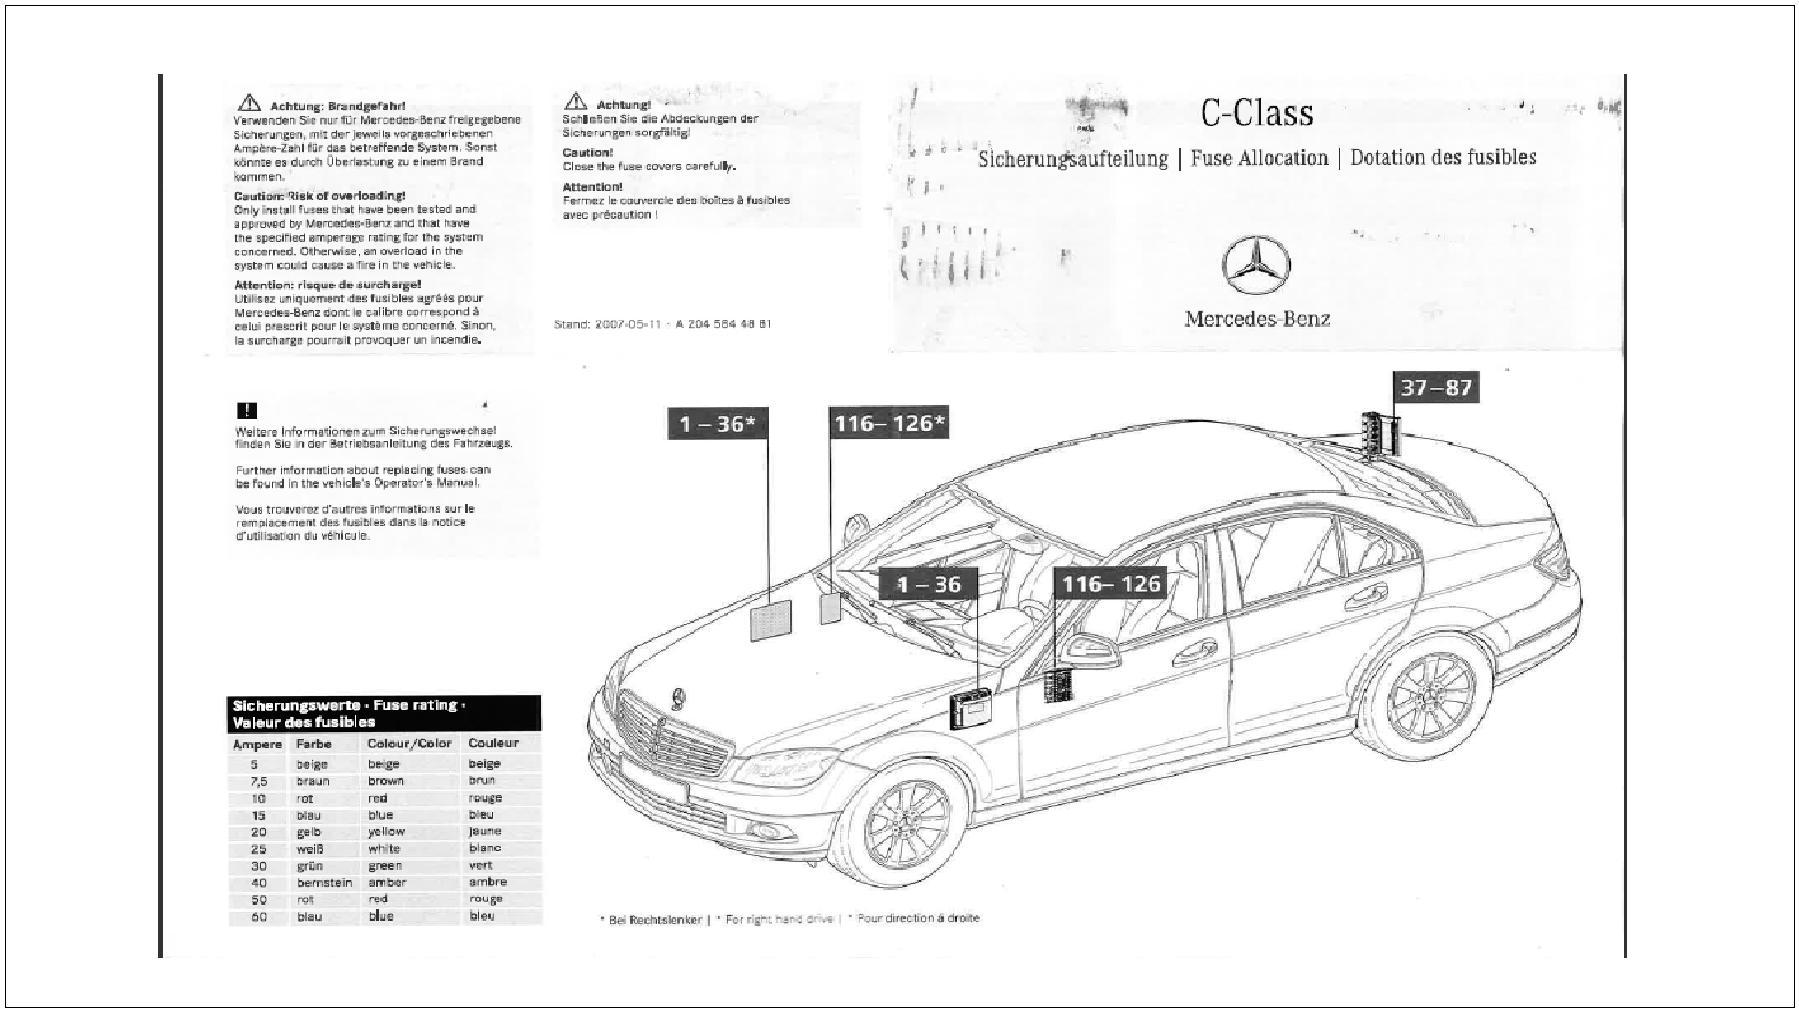 Mercedes C200 W204 Fuse Box Location : C trunk fuses wiring diagram